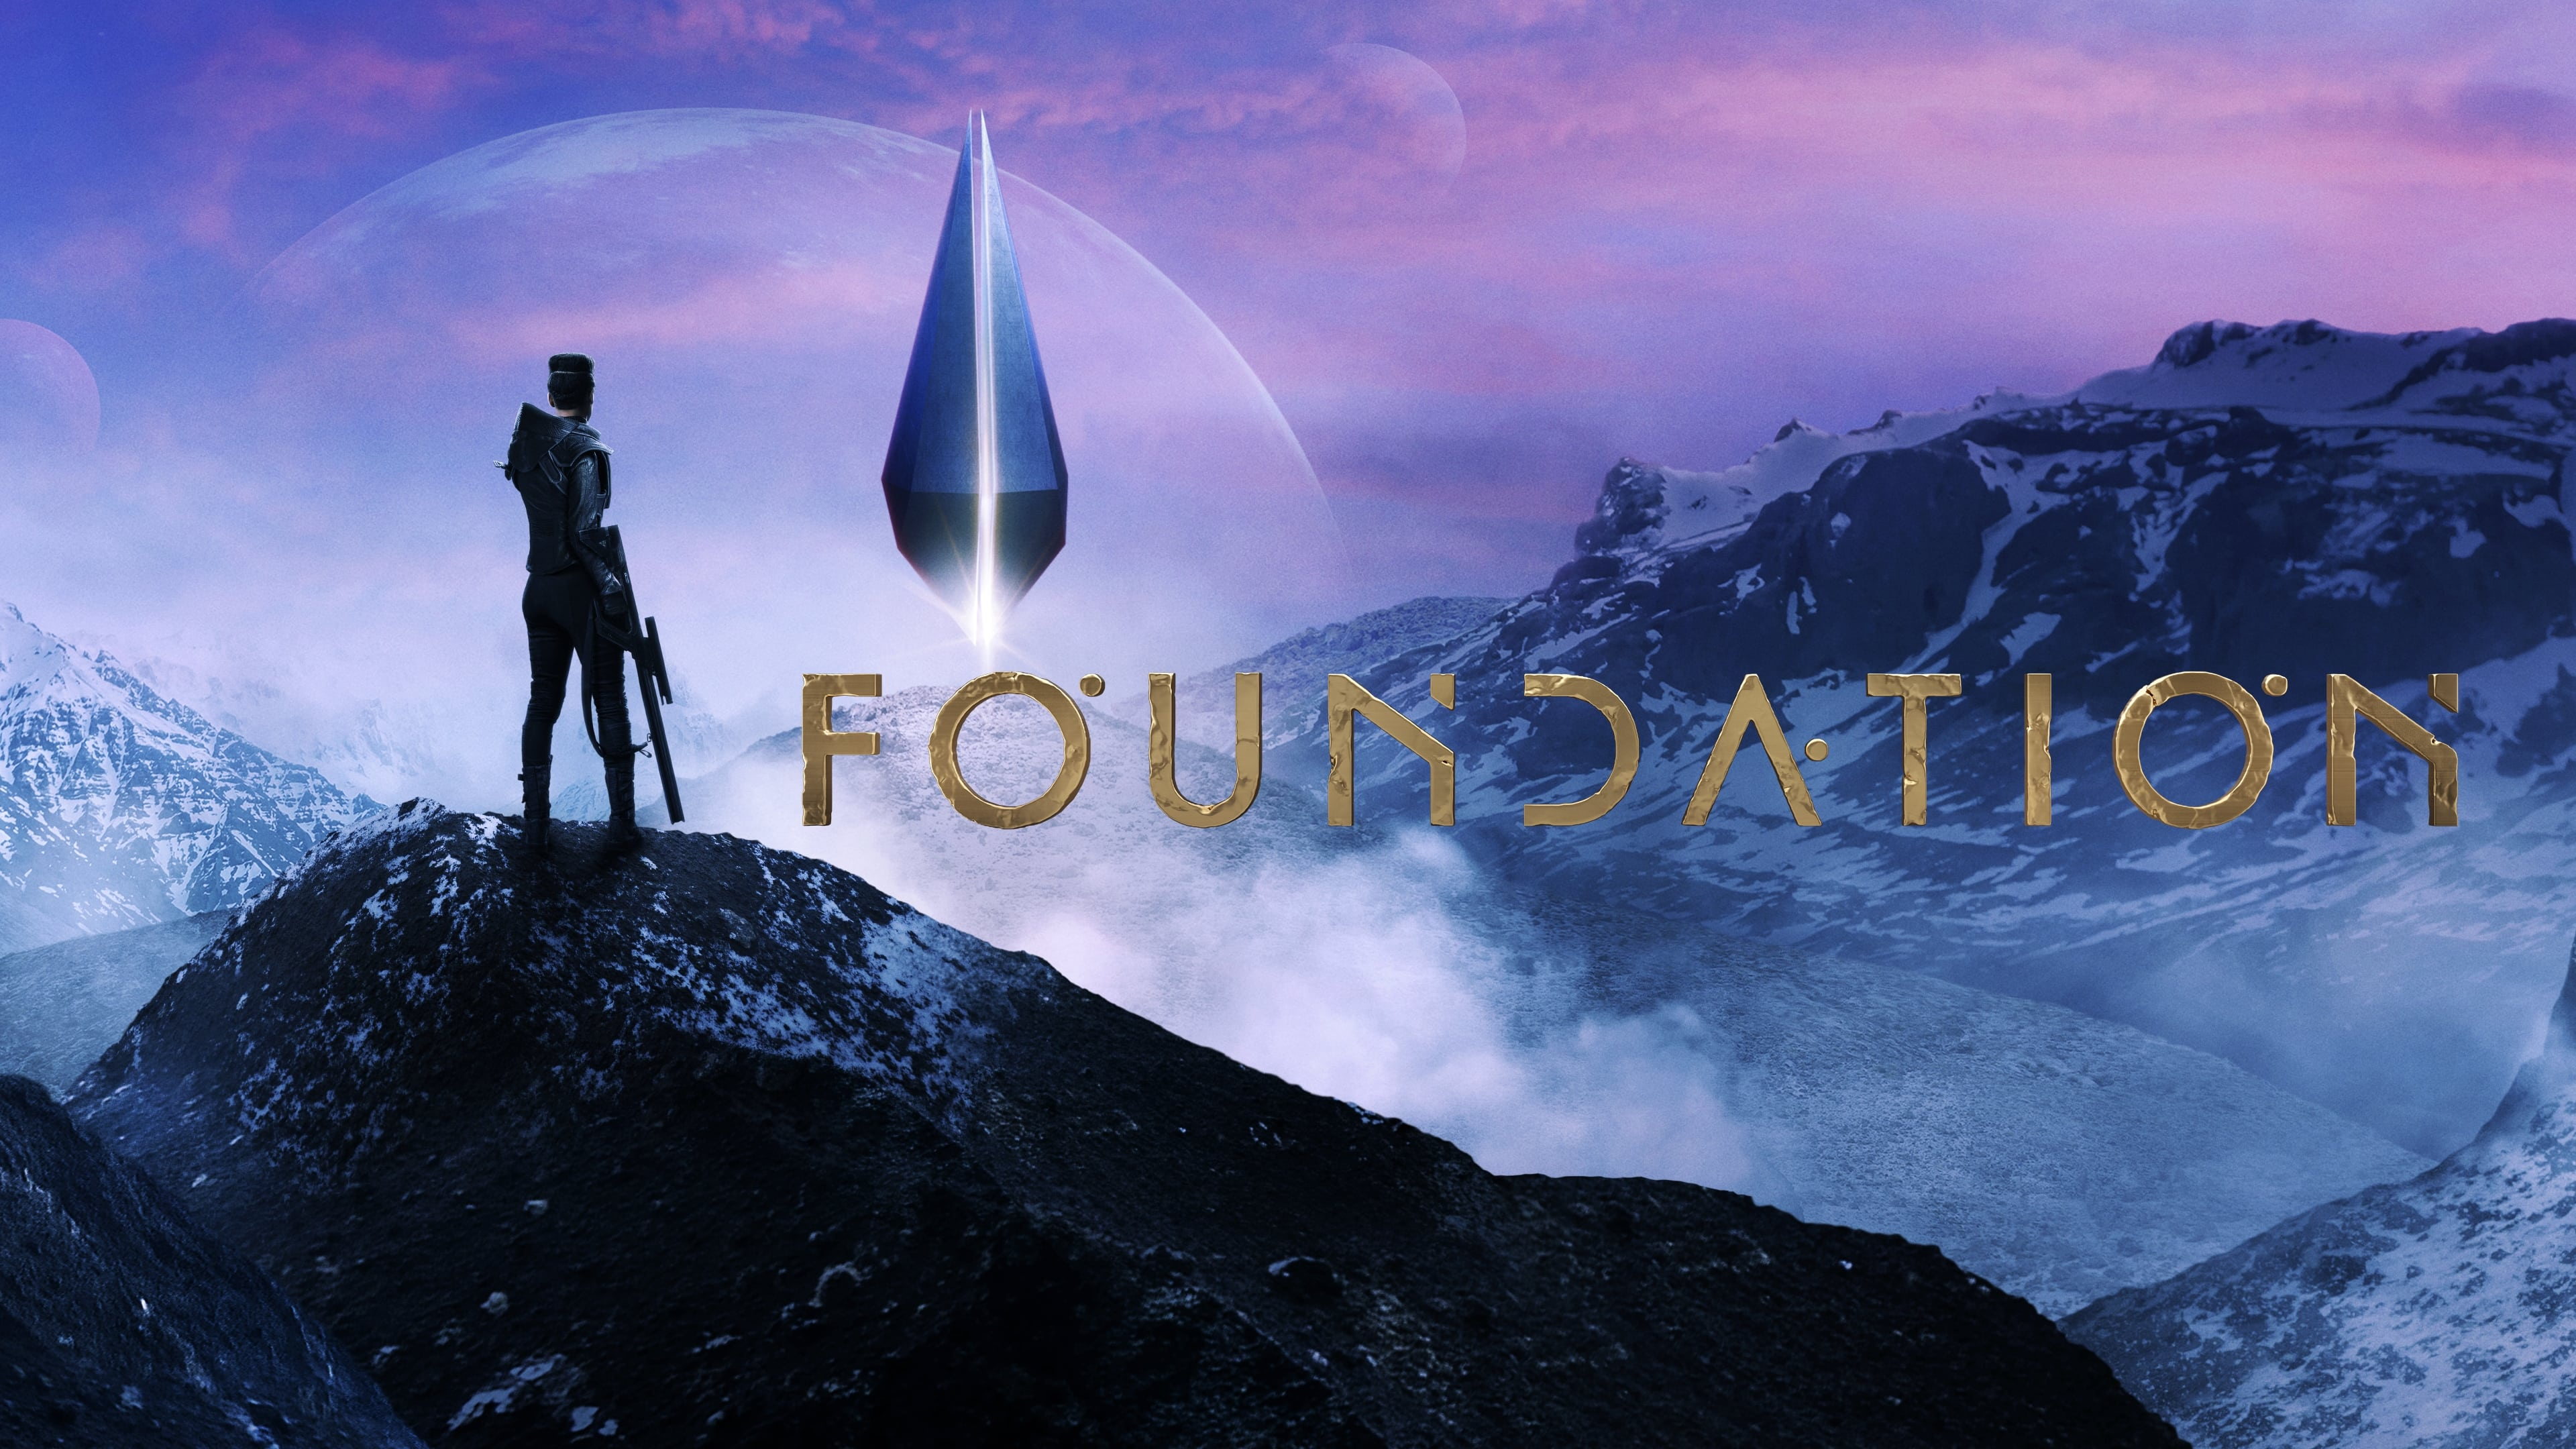 Foundation (2021) - Apple TV+ announces teaser and premiere date